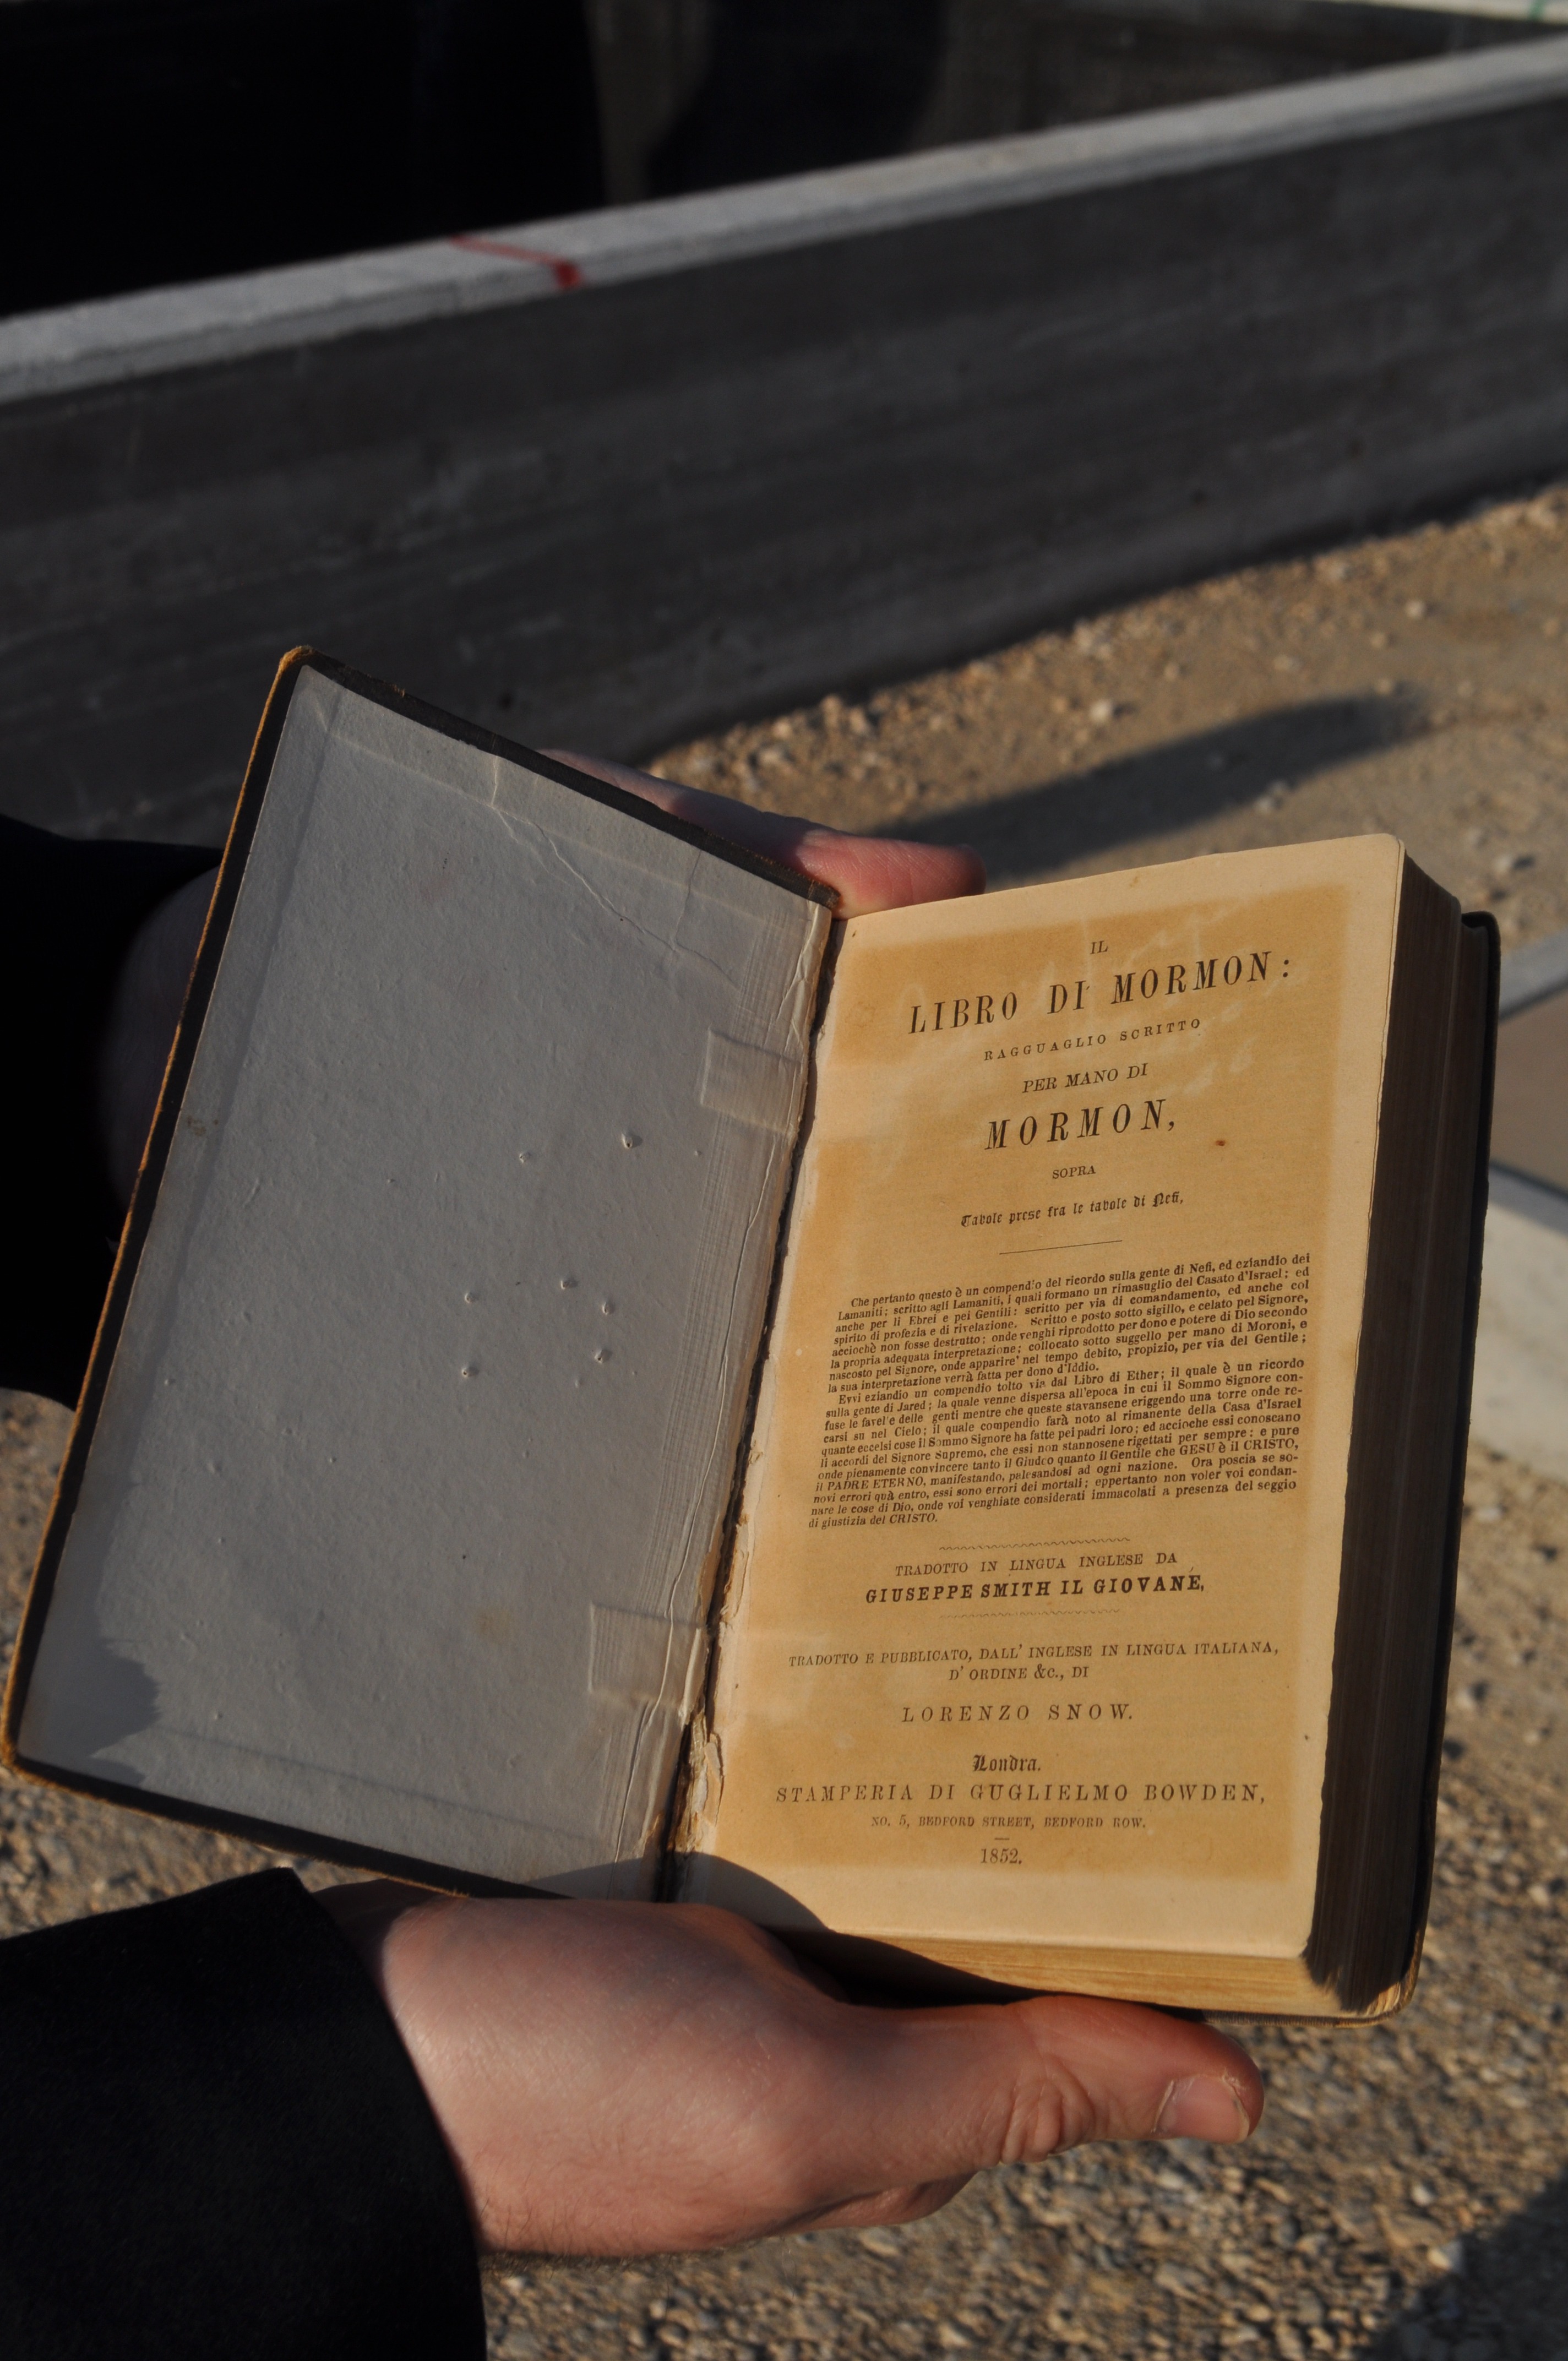 The 1852 edition of the Italian translation of the Book of Mormon. The Book is scheduled to be placed in the new Rome Italy Temple Visitors' Center next month.